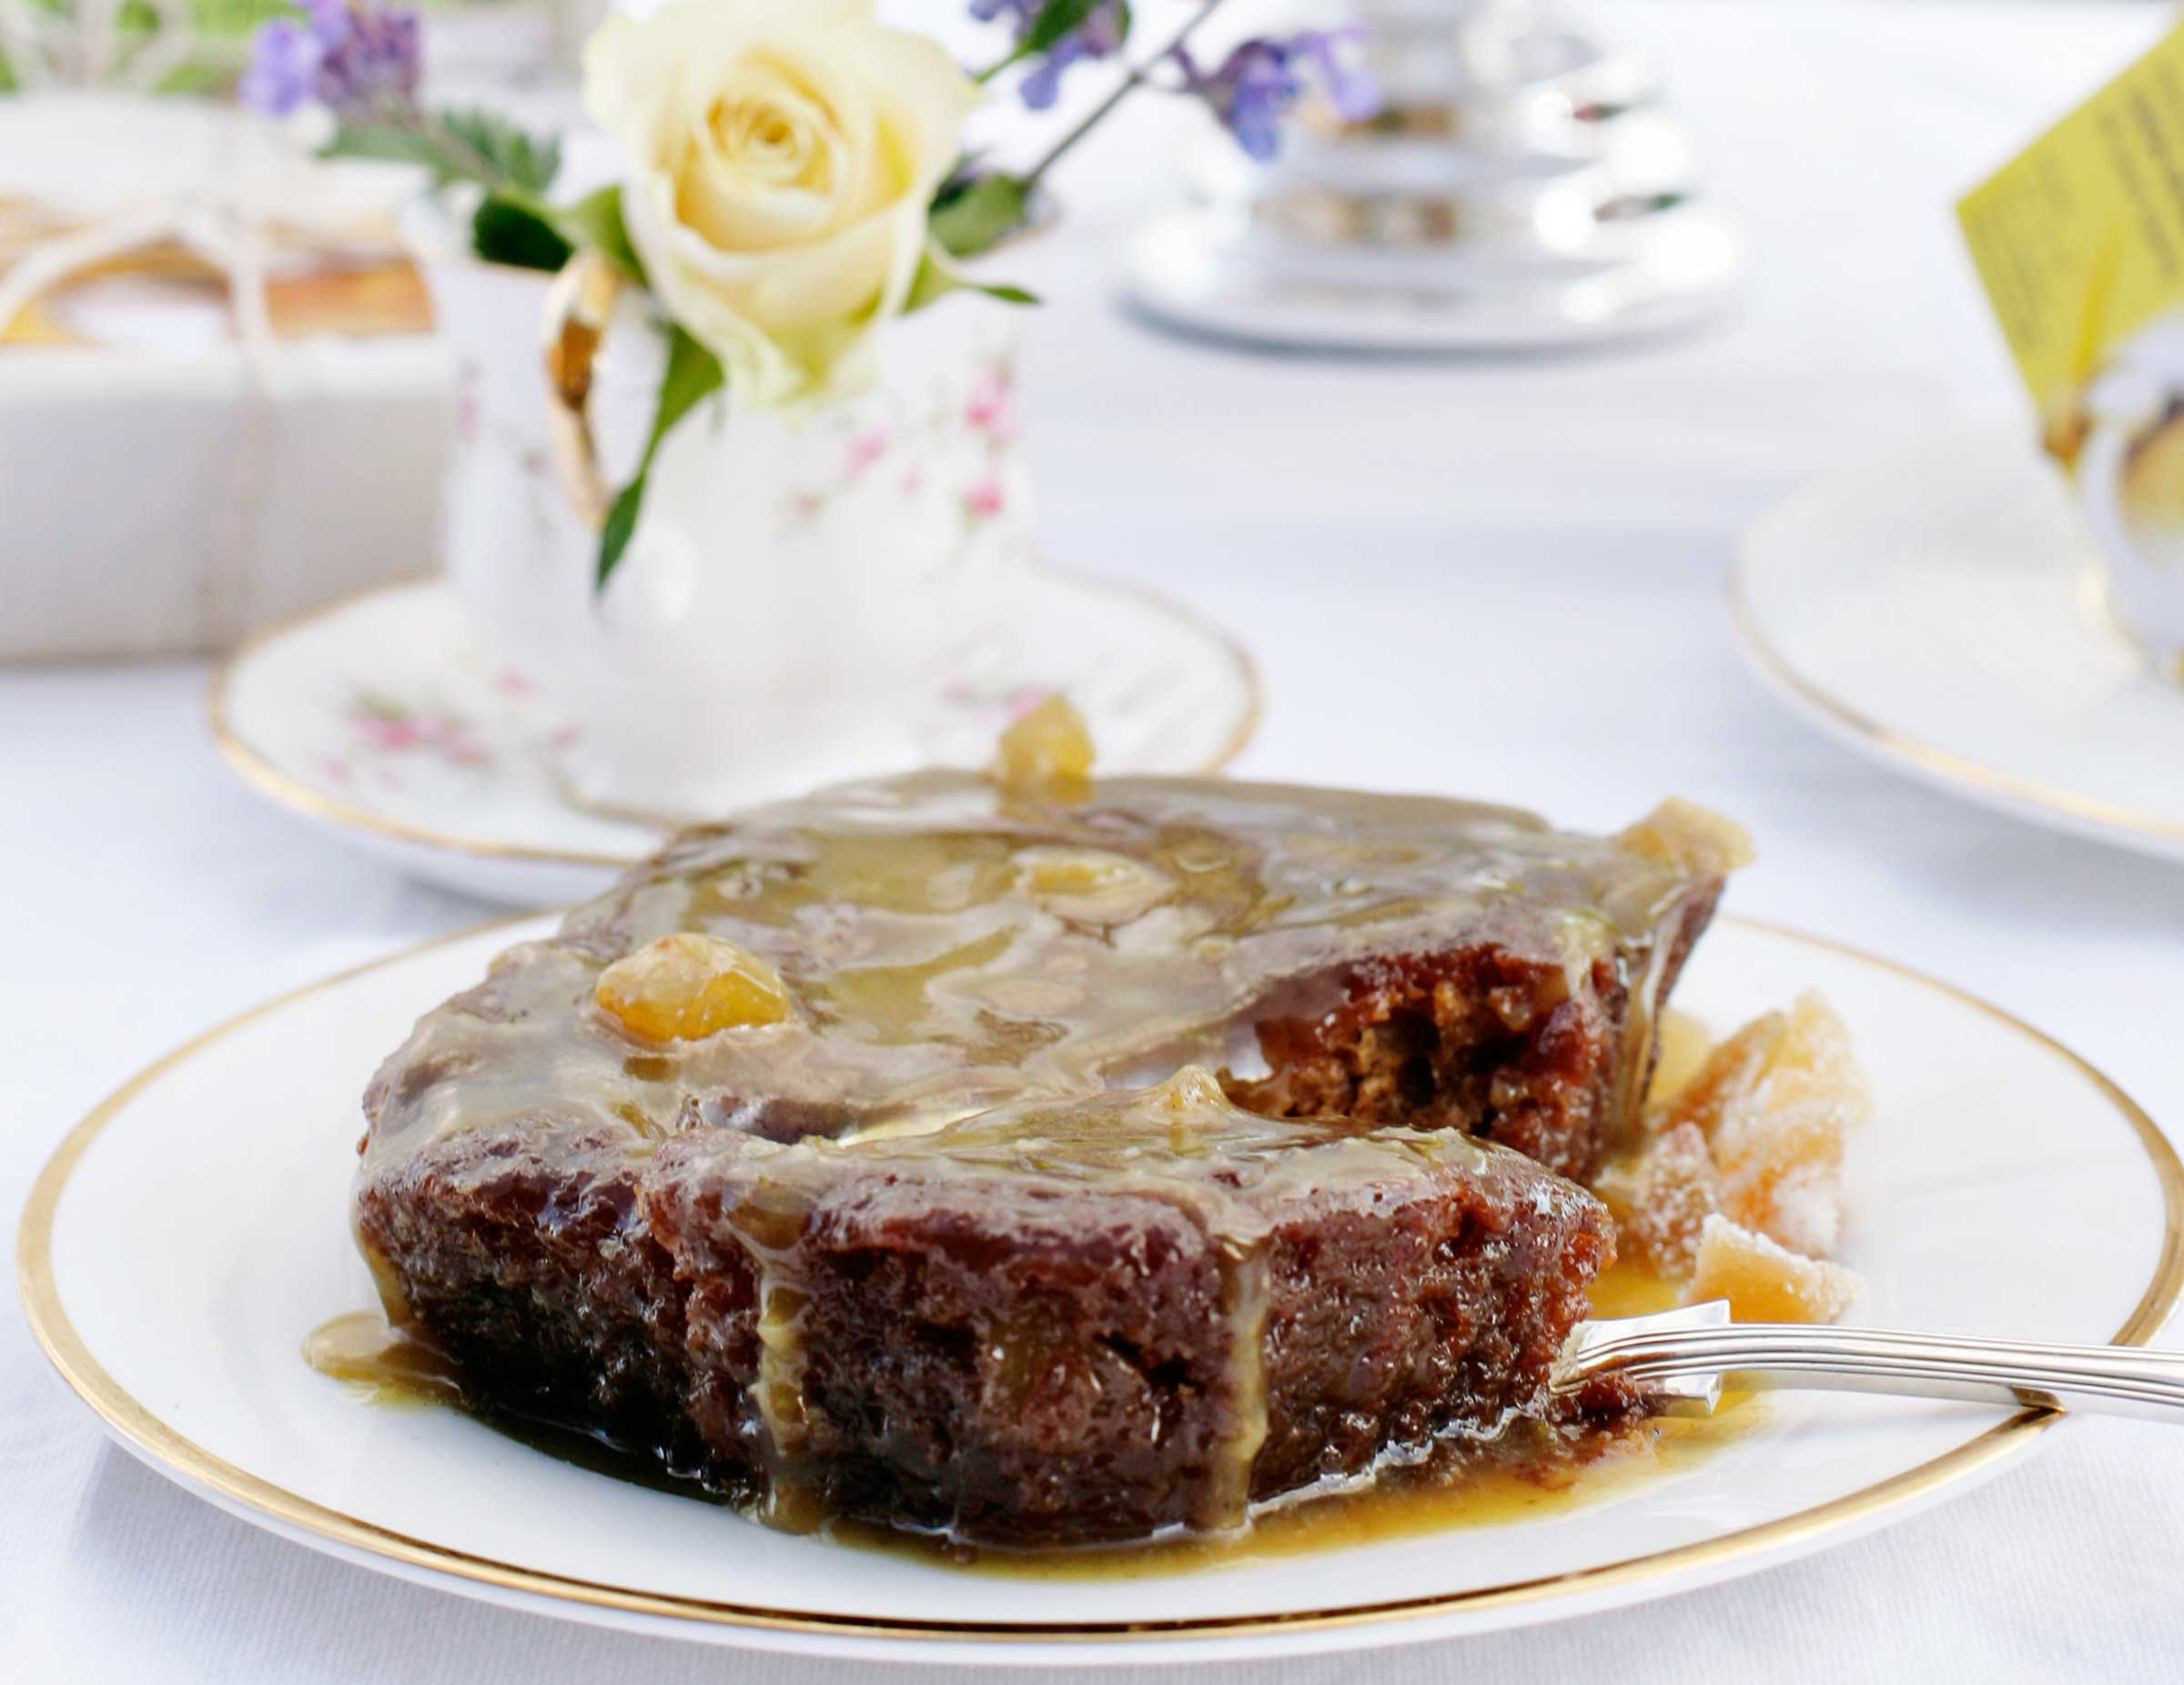 Delicious Sticky Ginger Pudding | The Proof Of The Pudding